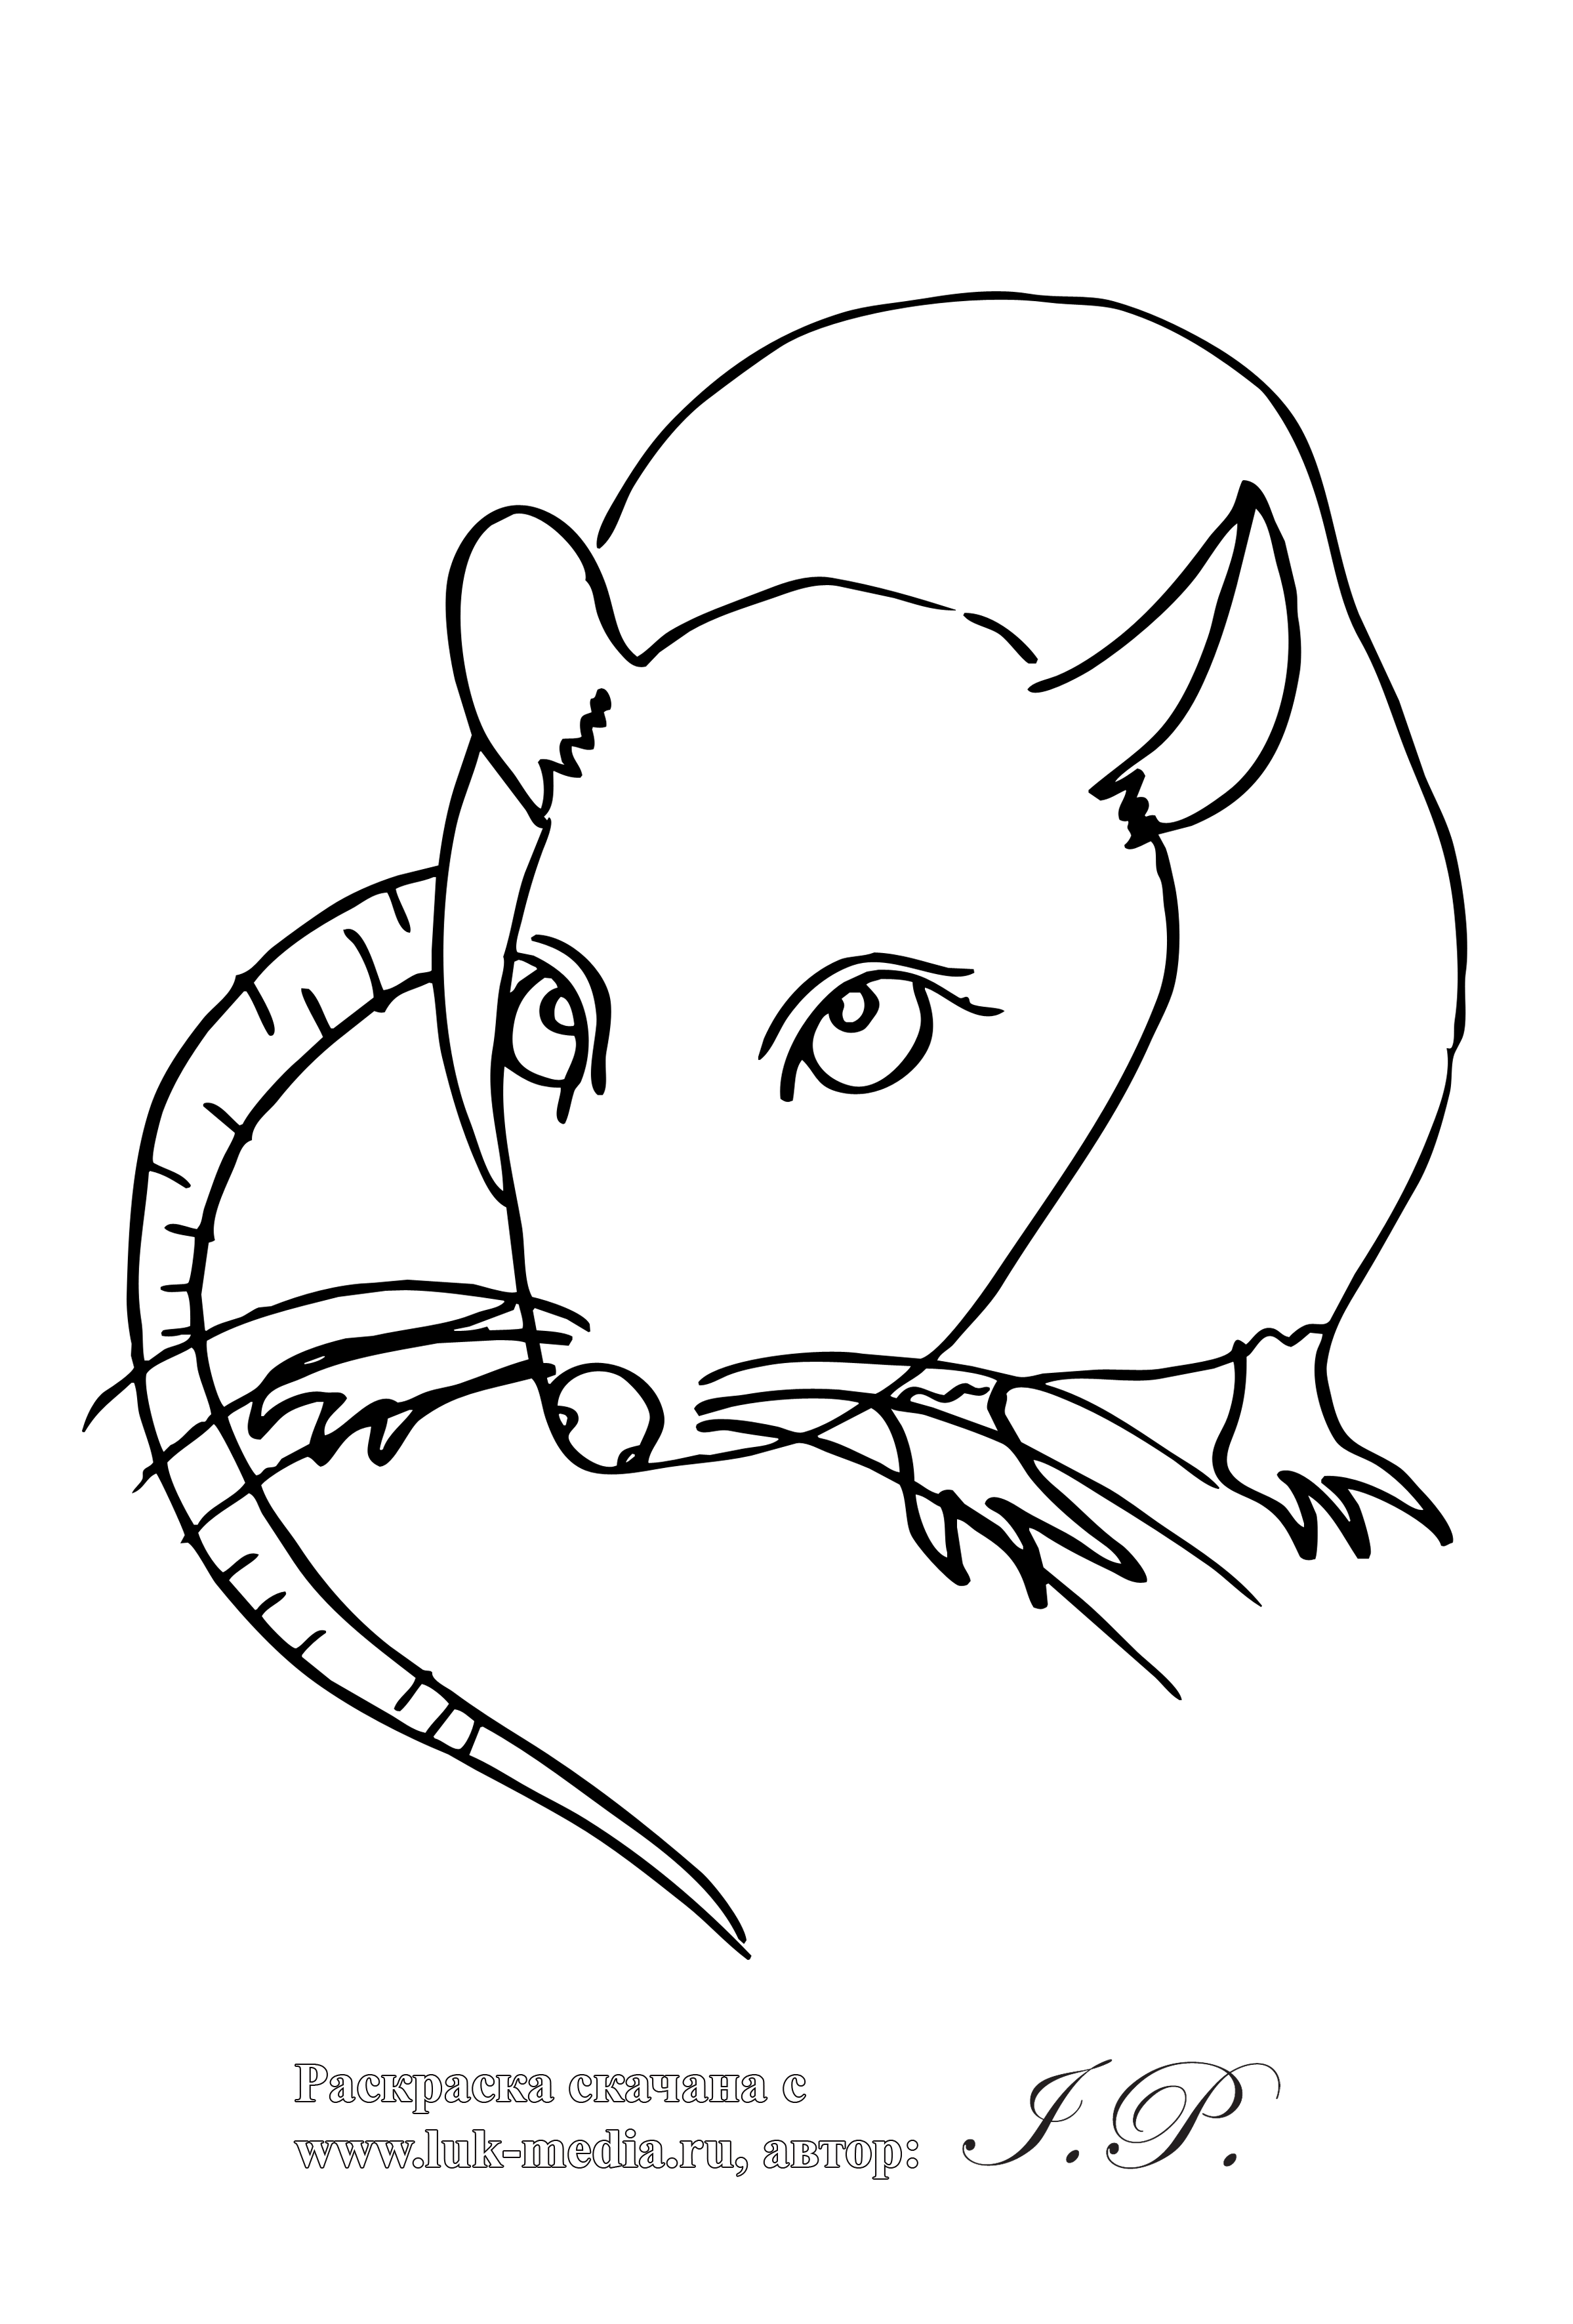 rat pictures to color rat coloring page coloring home pictures to rat color